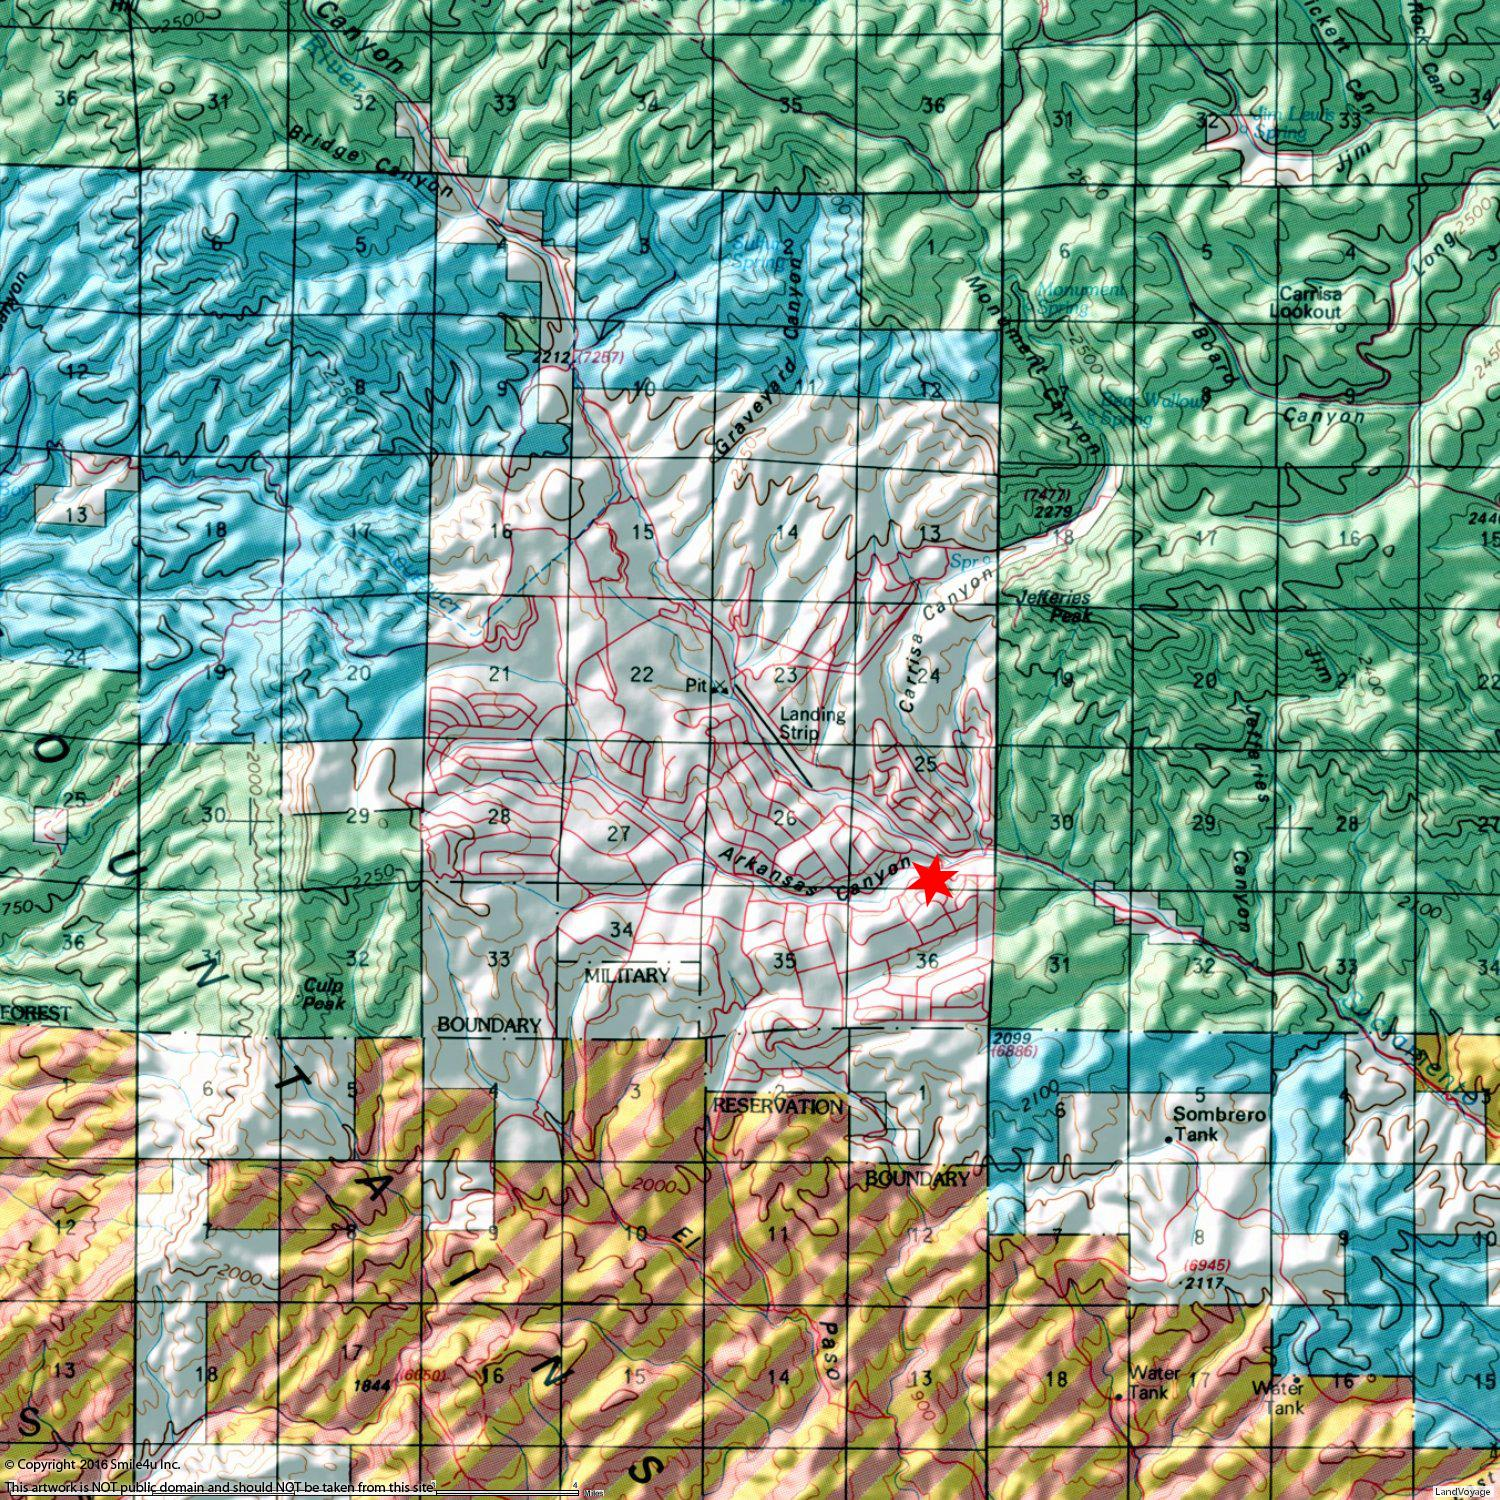 628791_watermarked_Timberon BLM Map.jpg